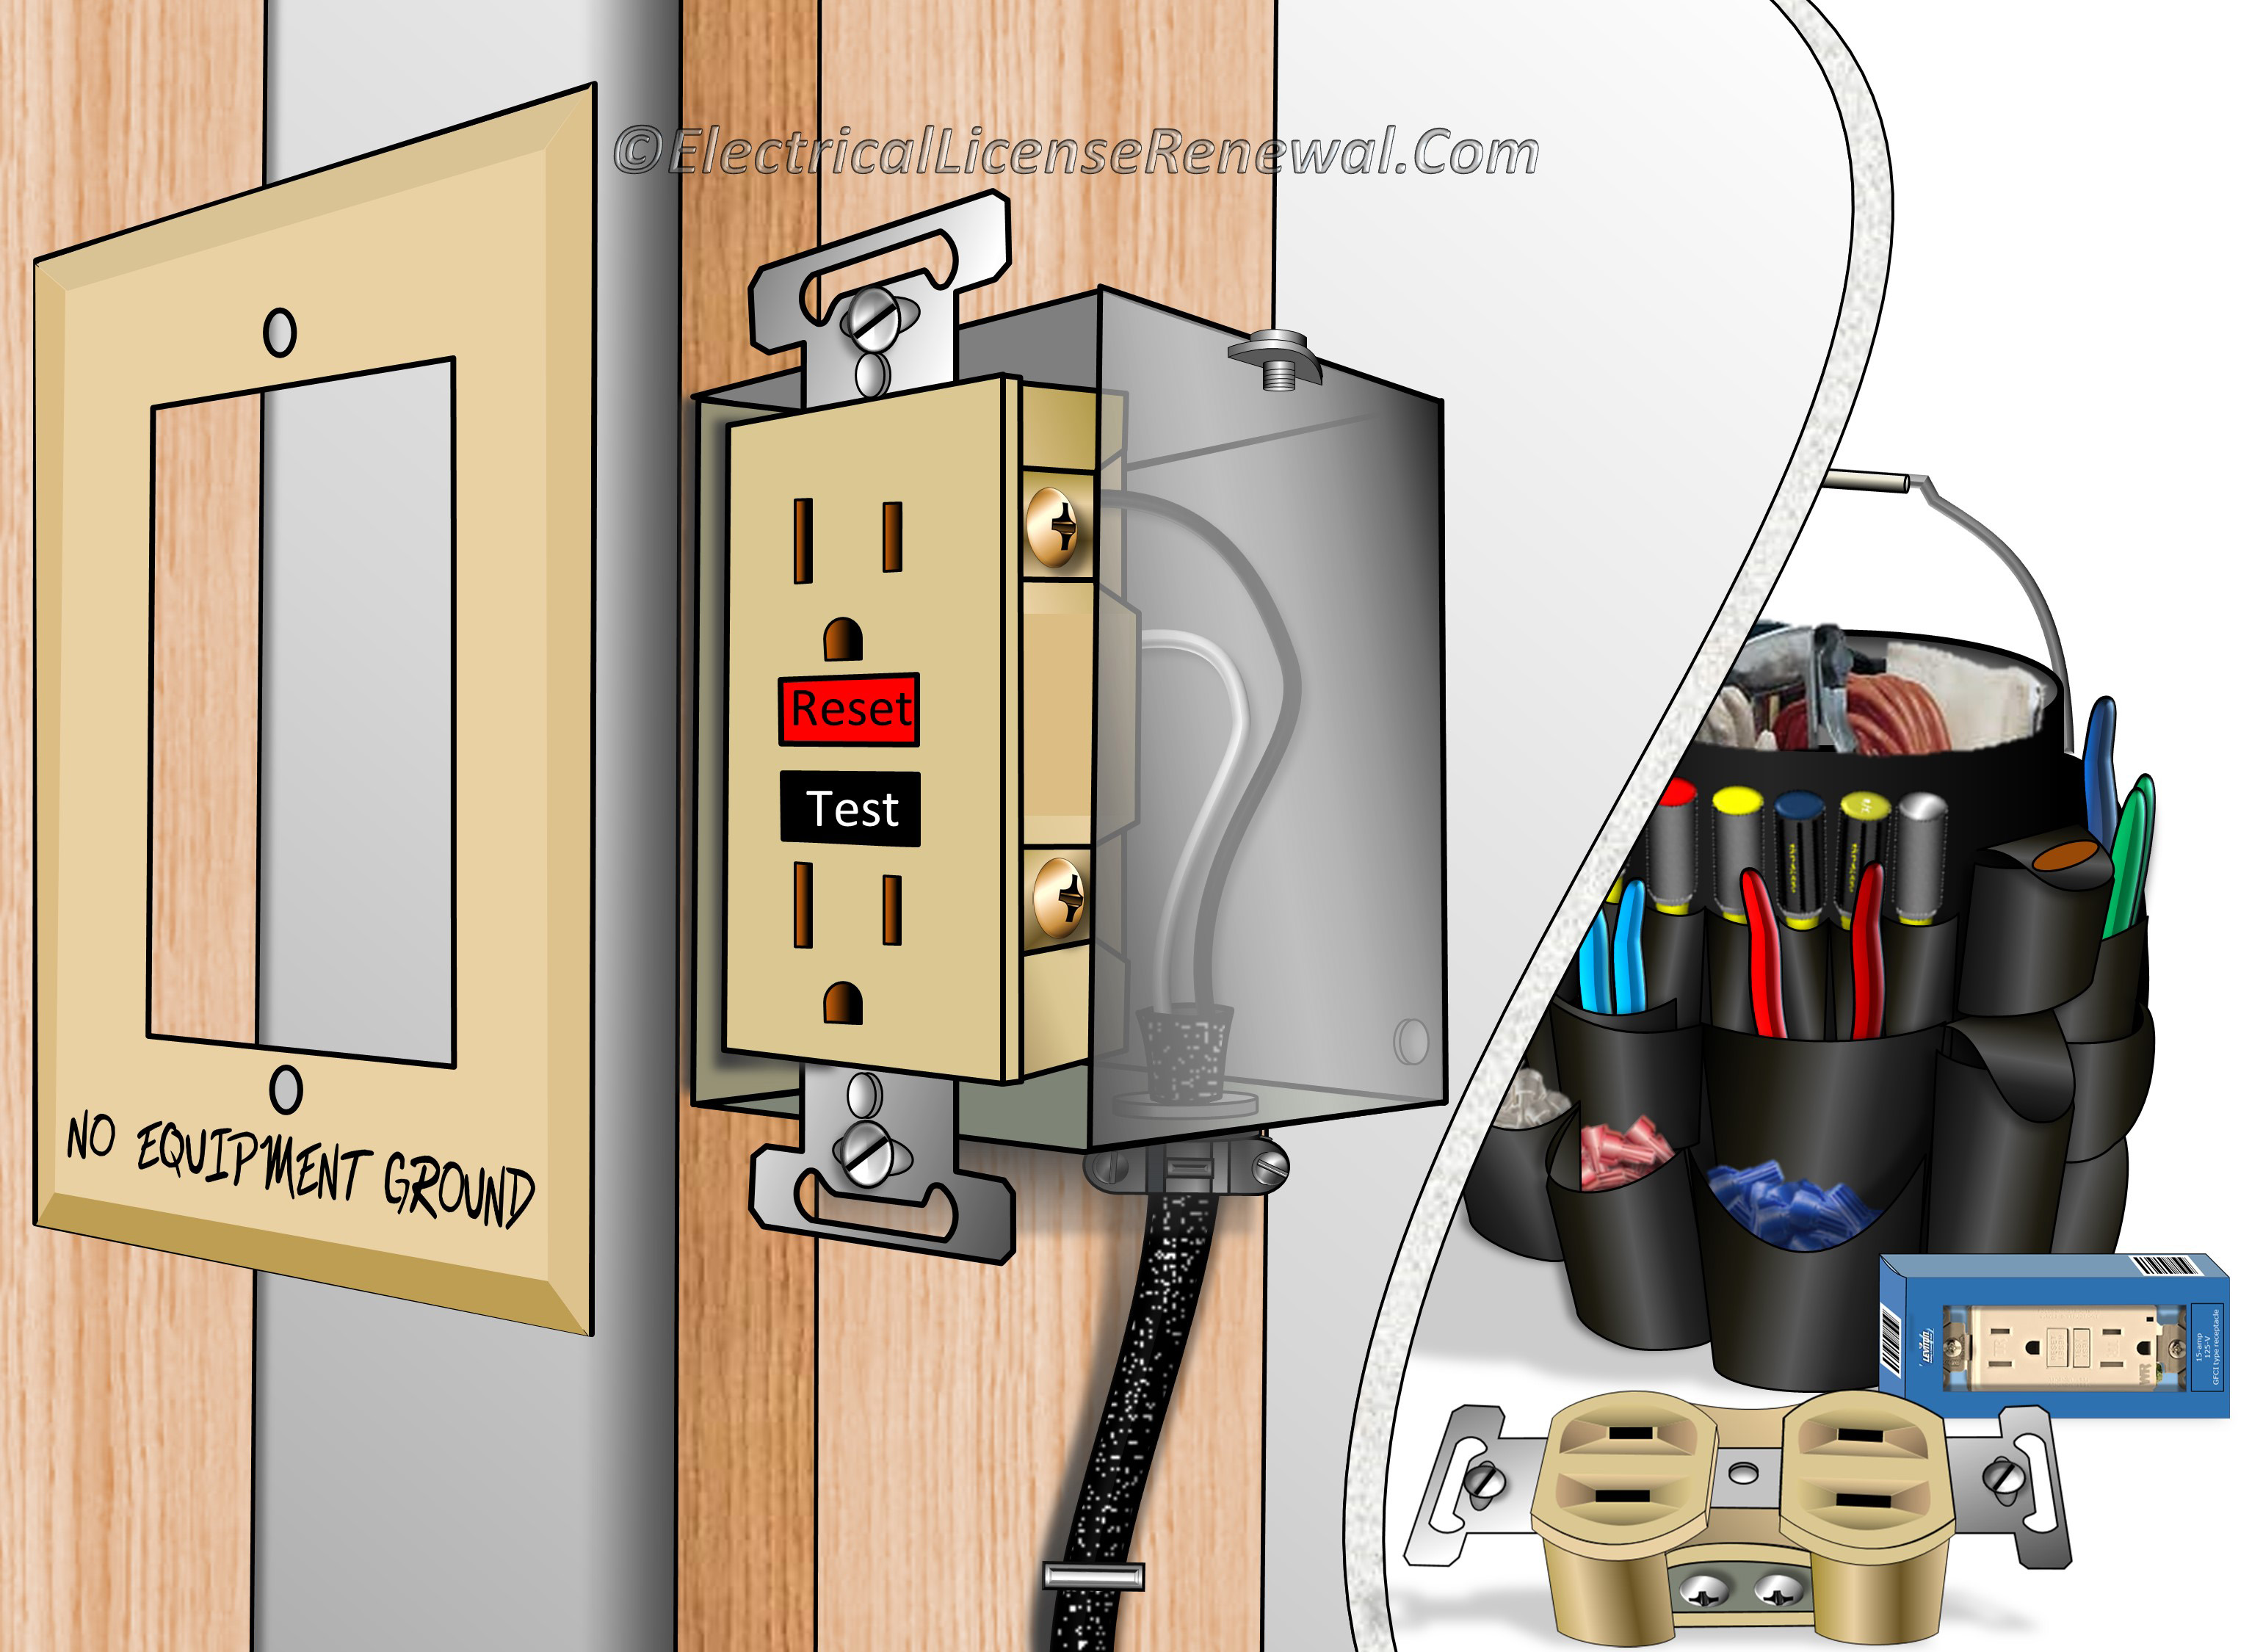 4064d2 Non Grounding Type Receptacles Wiring Of Also With Ground Fault Circuit Interrupter